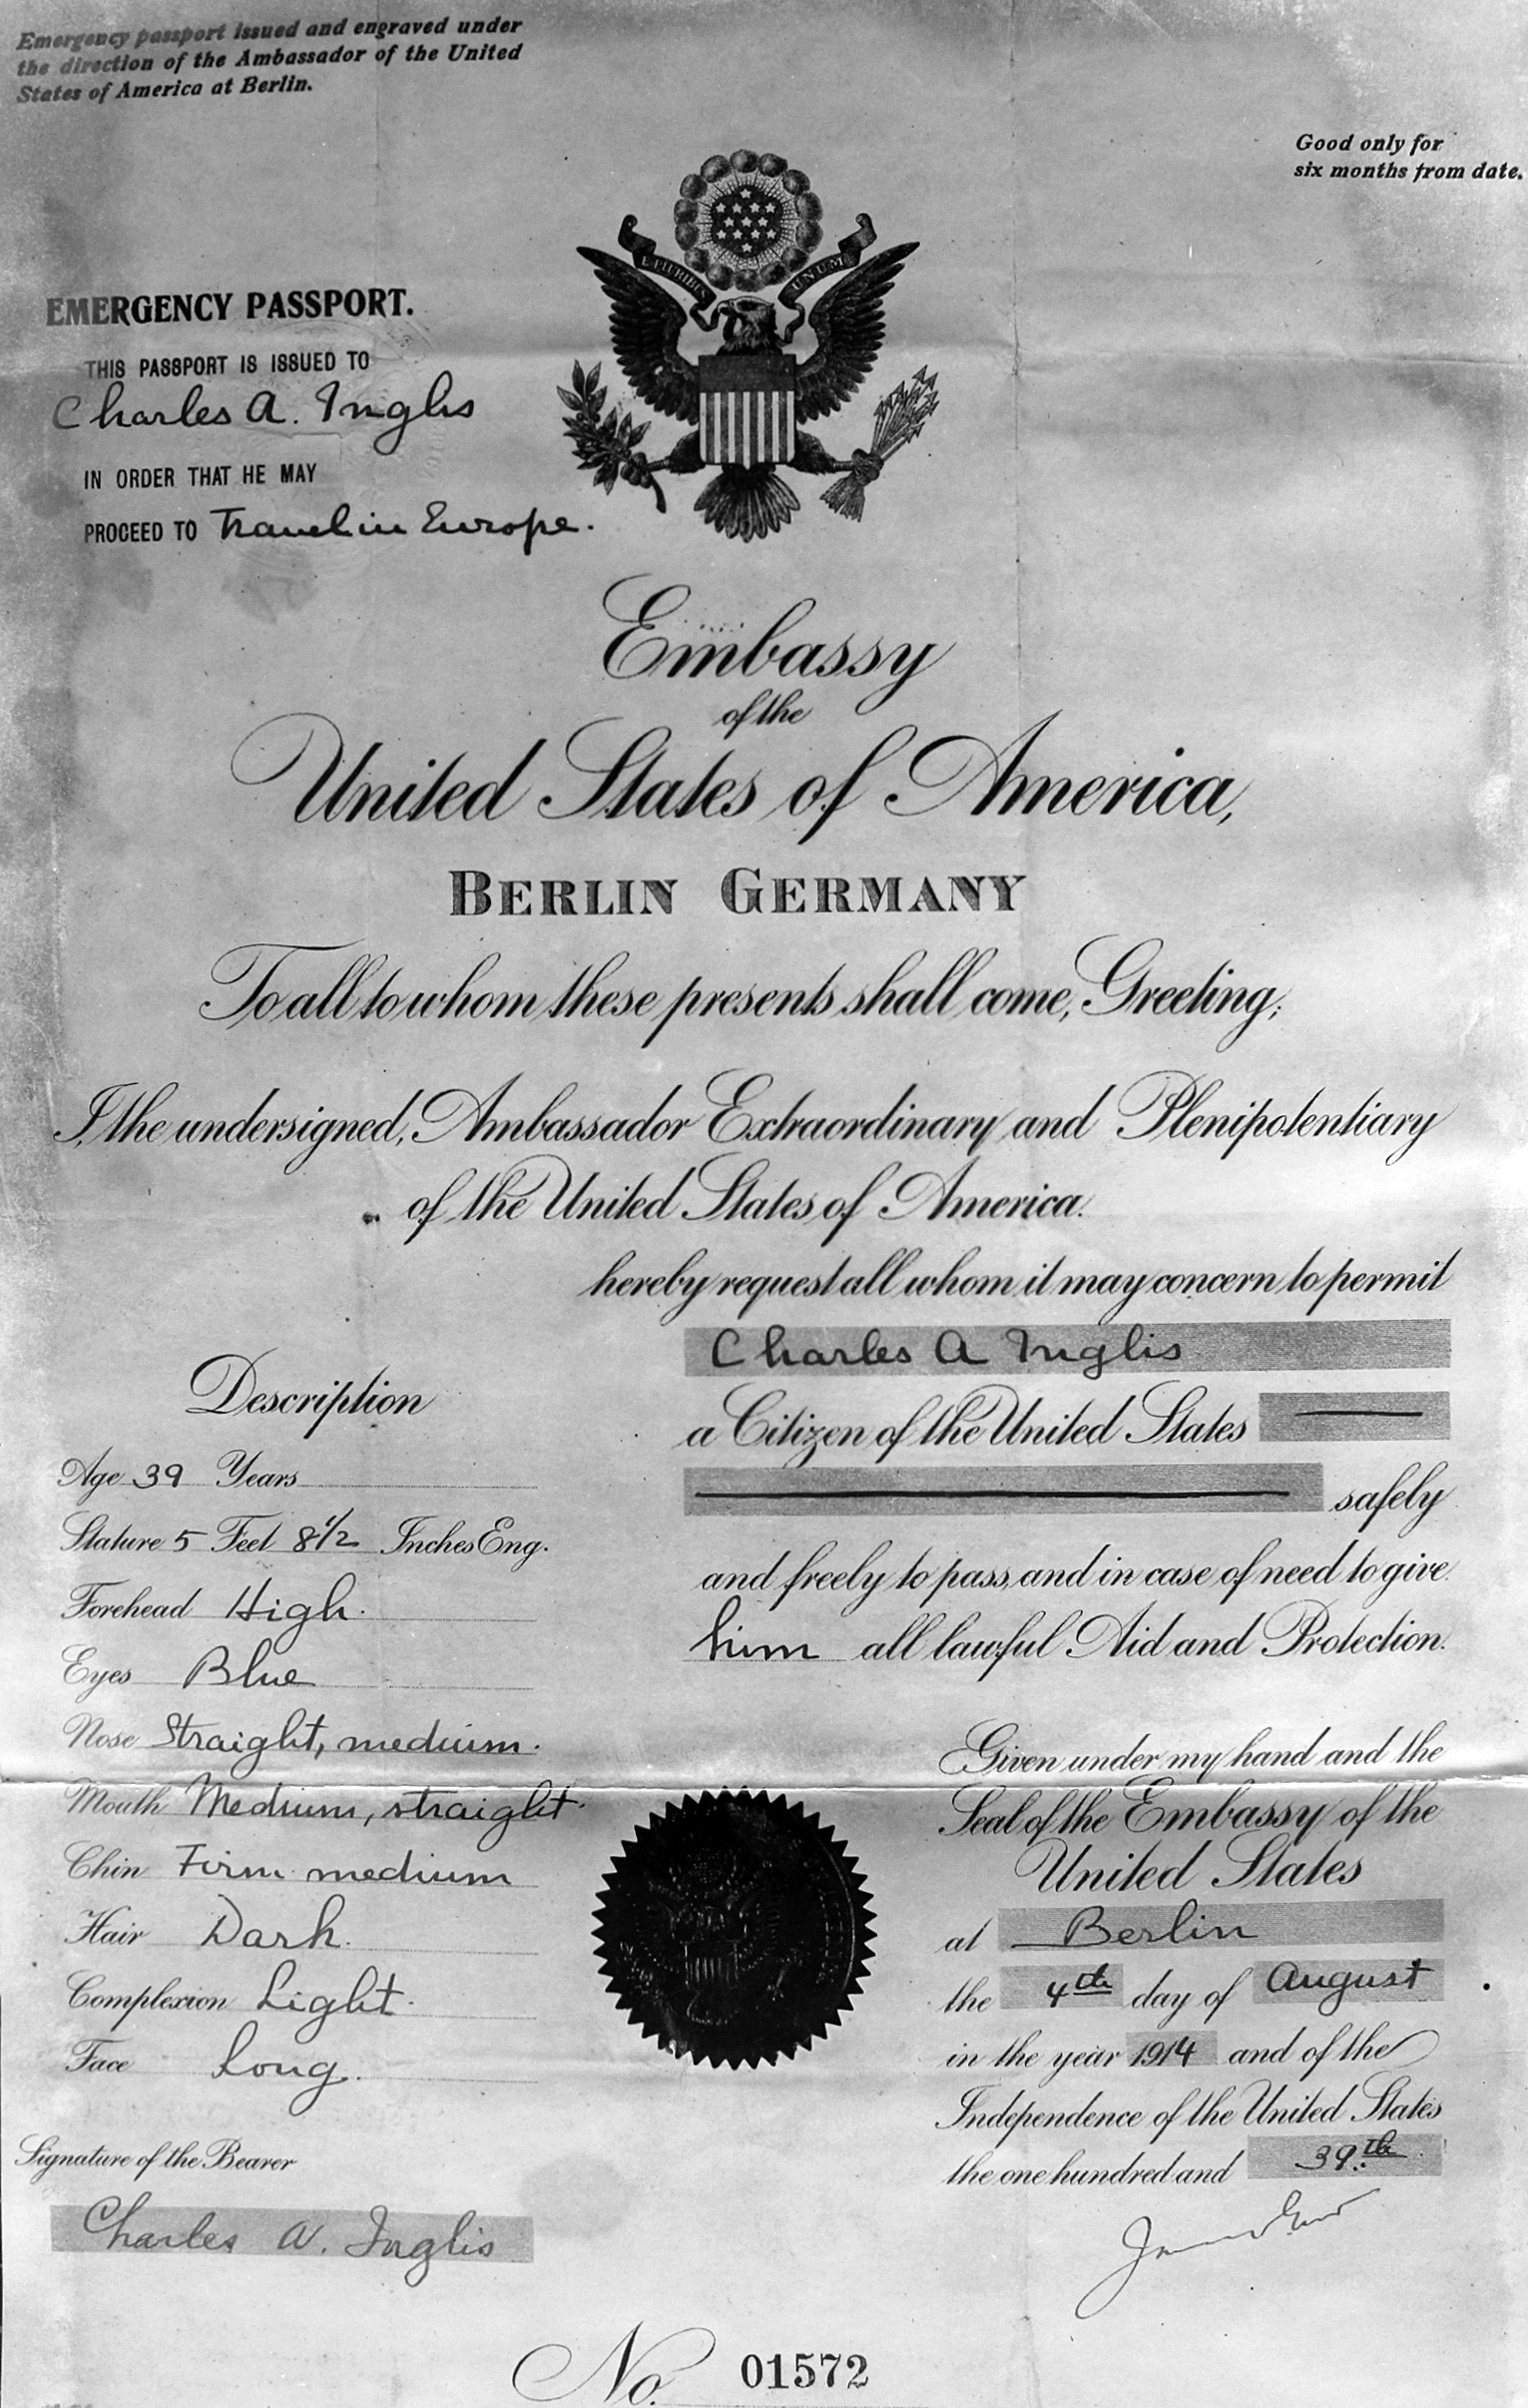 Lody's American documents, in the name of Charles A.